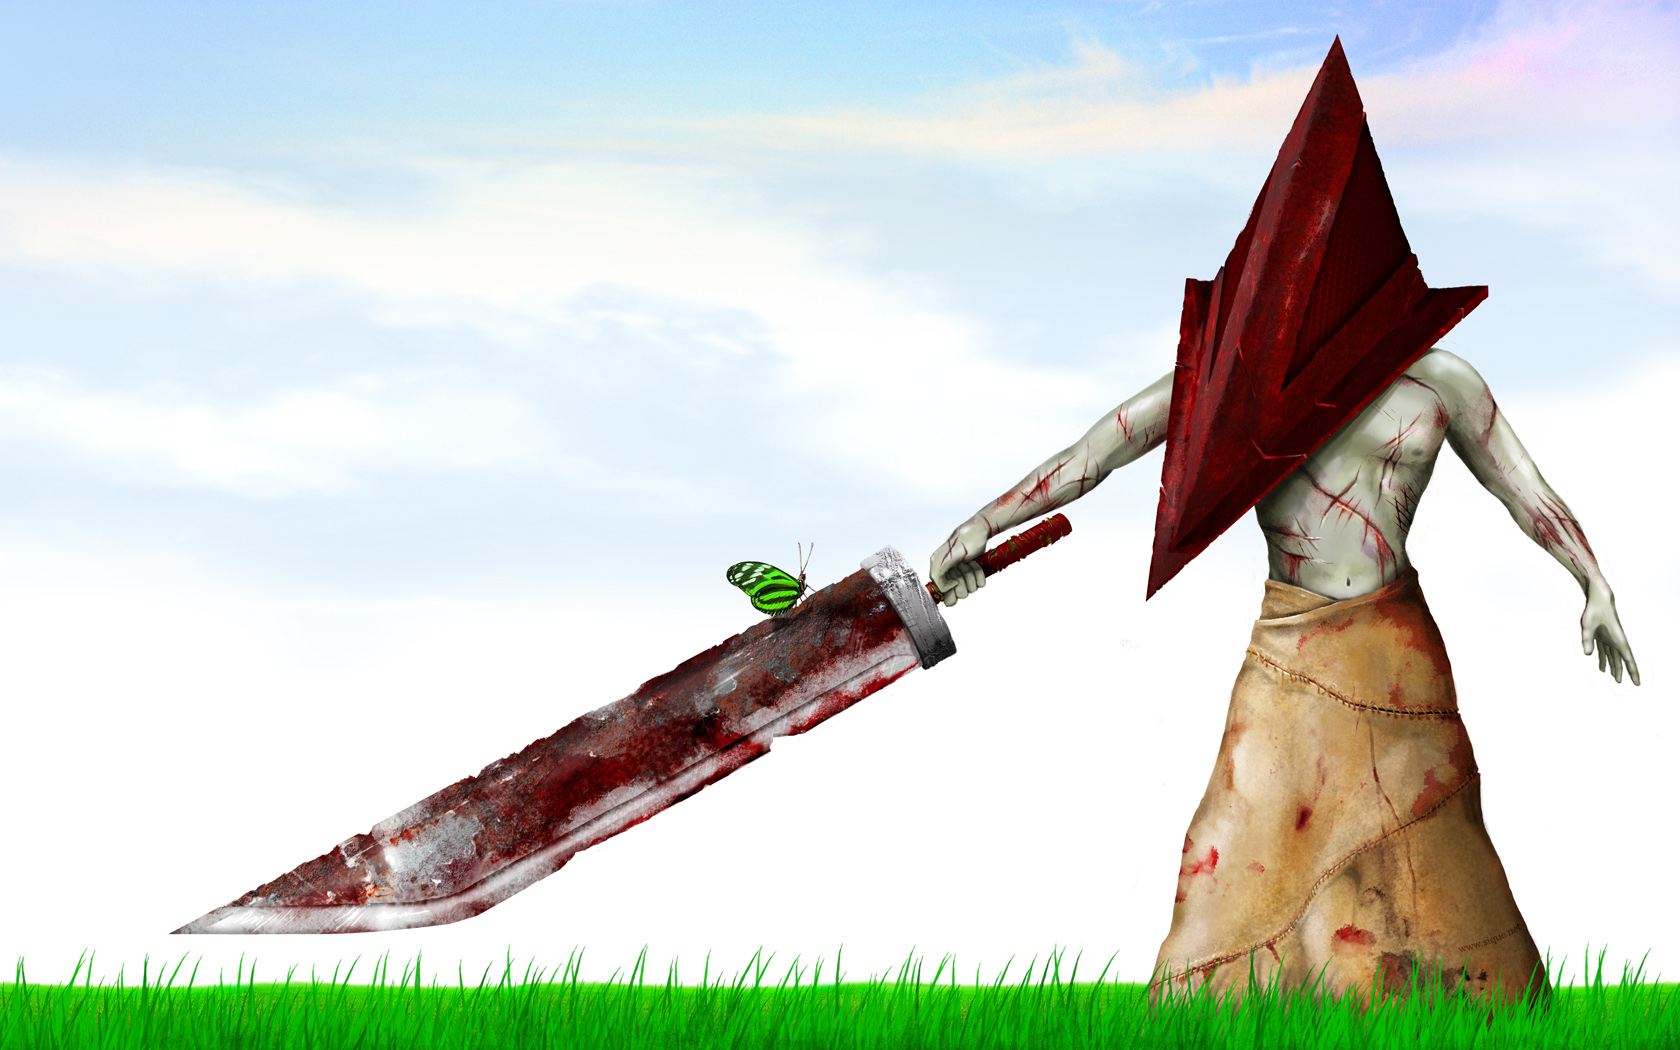 wallpaper_pyramid_head_1680x1050.jpg